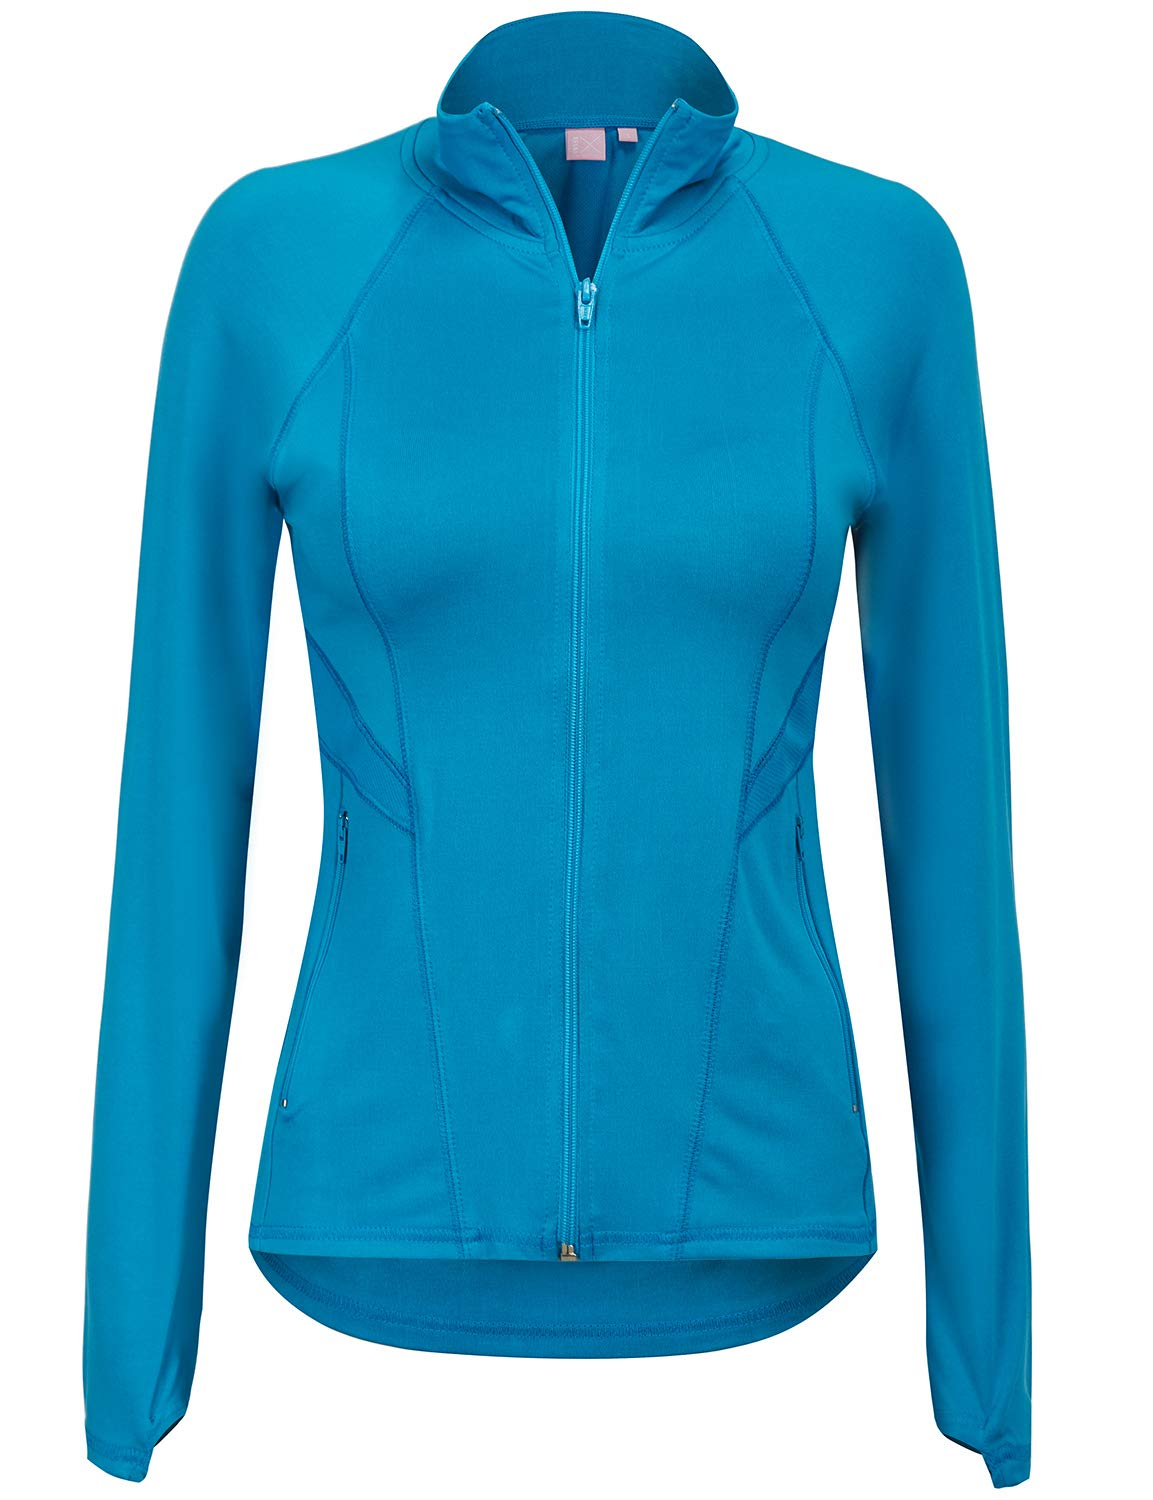 Regna X Women's Full Zip Up Activewear Stretchy Spandex Track Jacket Blue S